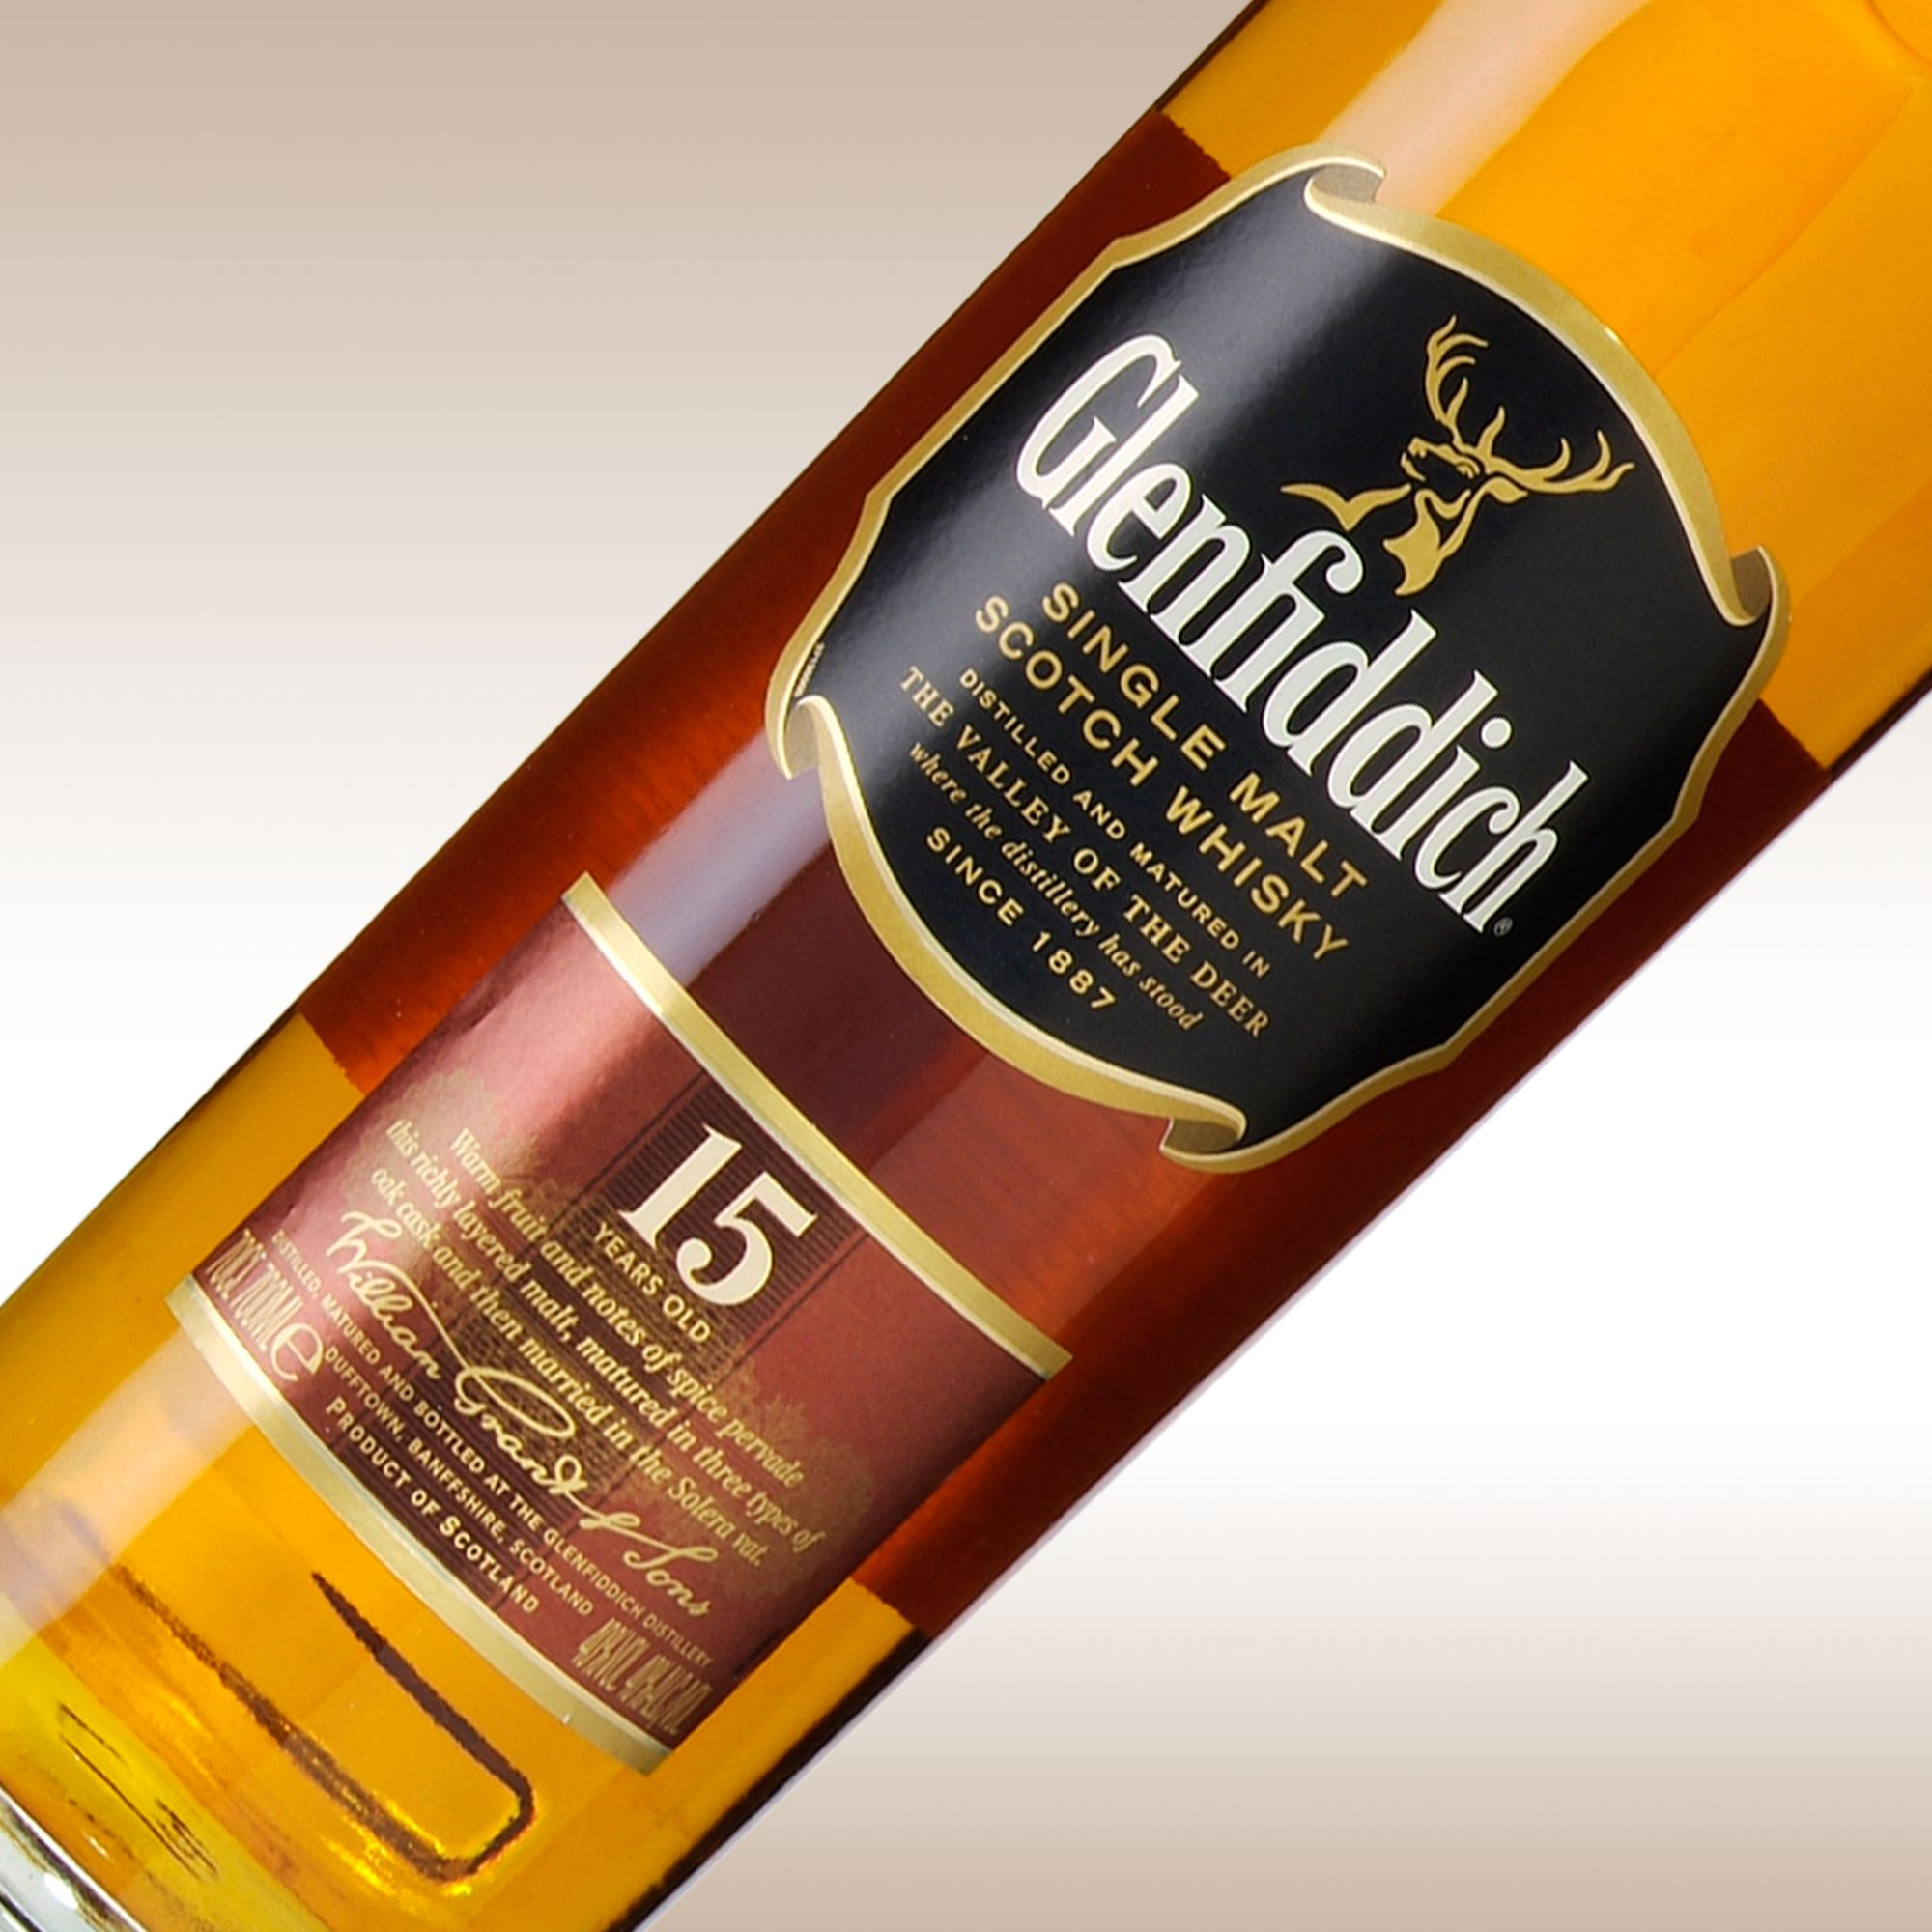 Glenfiddich 15 Year Old Speyside Malt Whisky